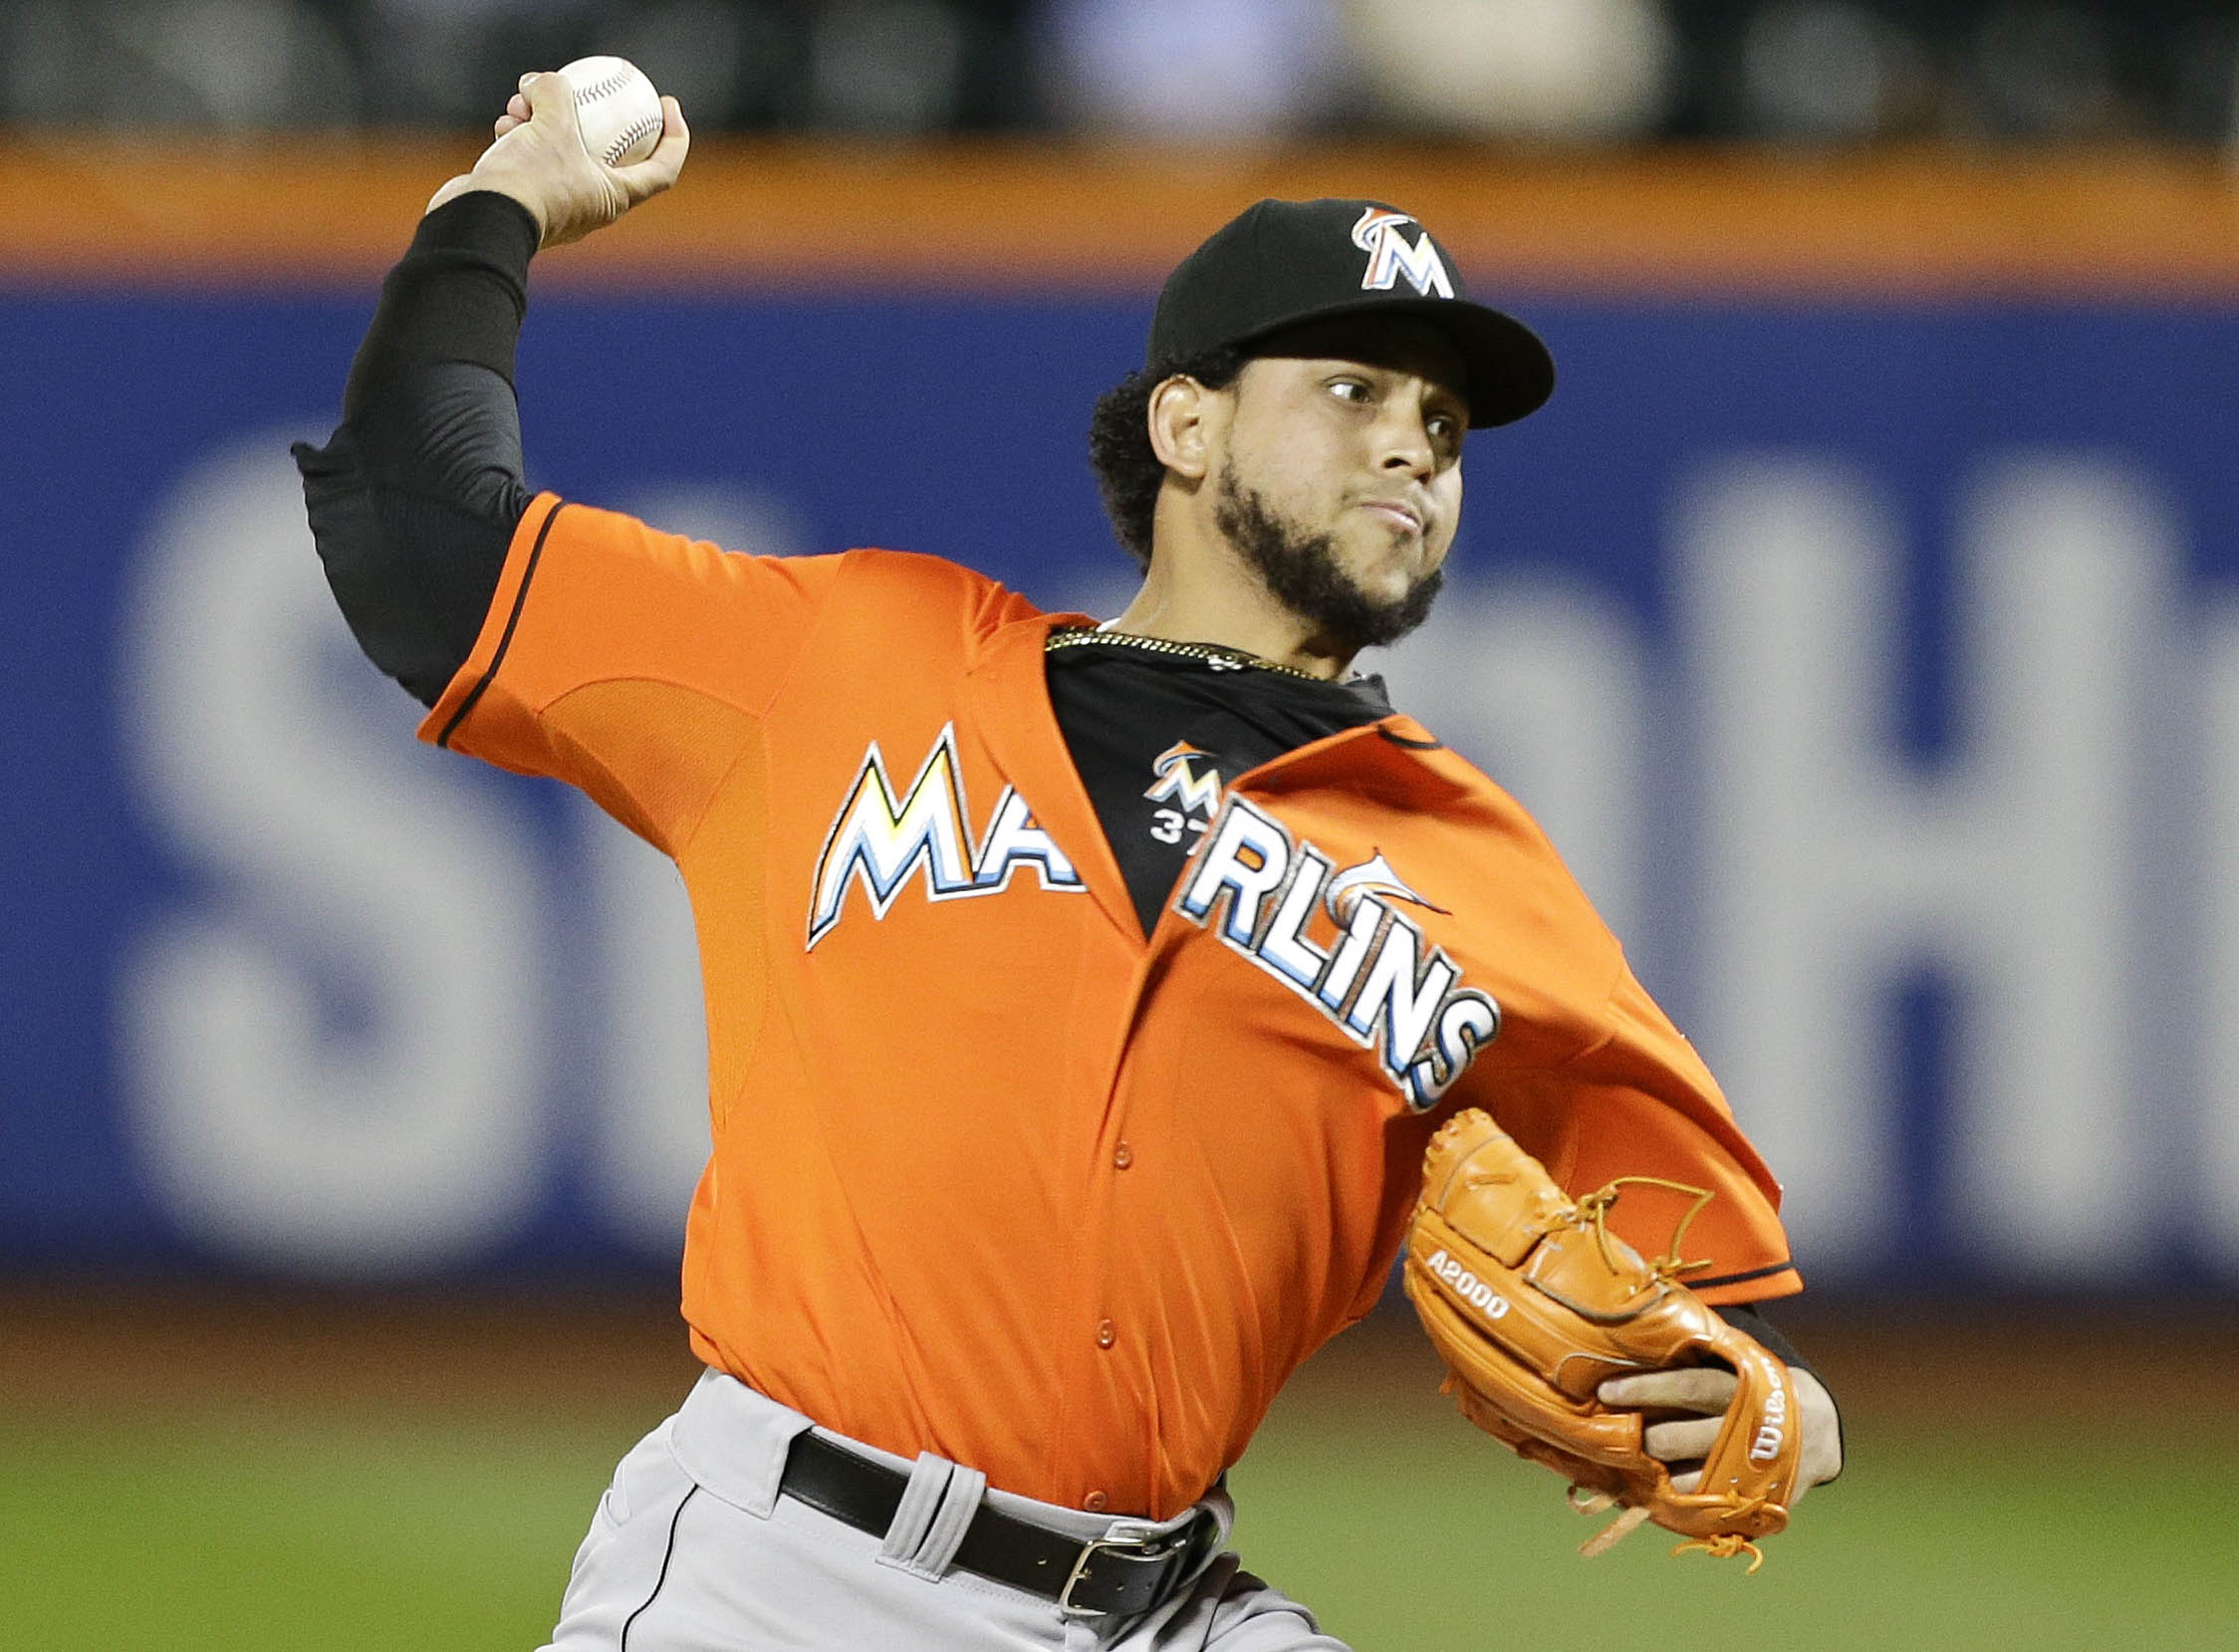 FILE - In this Wednesday, Sept. 17, 2014 file photo, Miami Marlins' Henderson Alvarez delivers a pitch during the first inning of a baseball game against the New York Mets in New York. The Oakland Athletics and pitcher Henderson Alvarez have agreed to a o